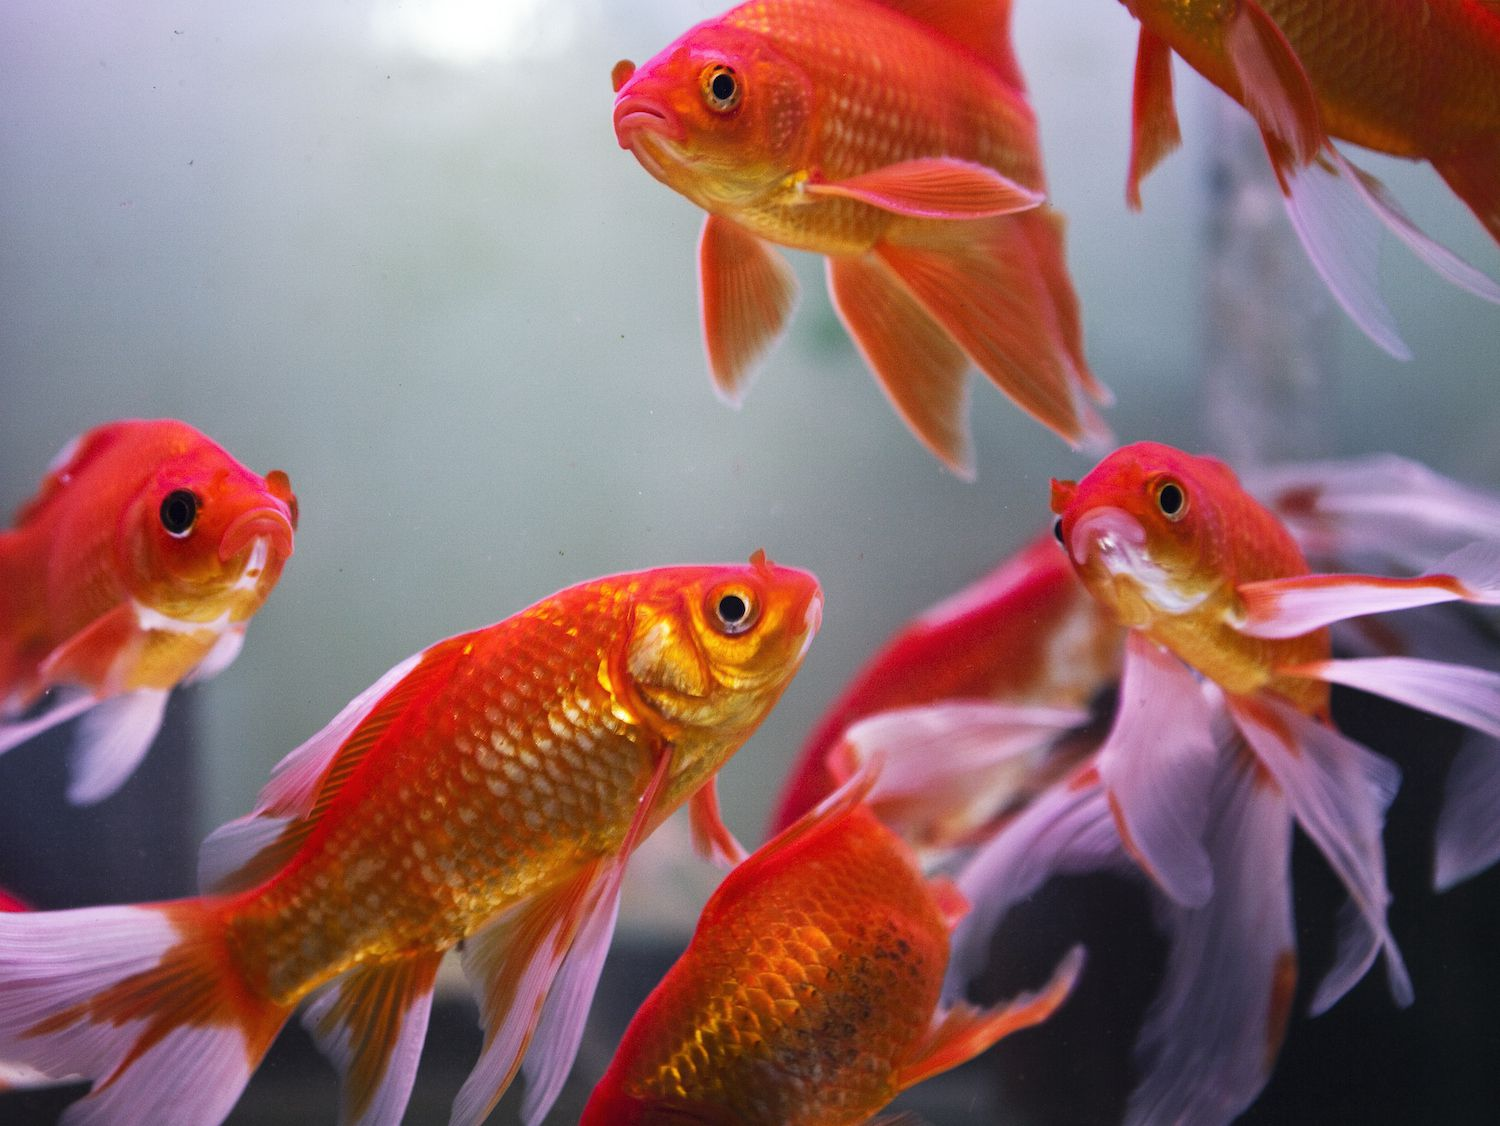 Fish for Wealth: All About the Feng Shui Aquarium